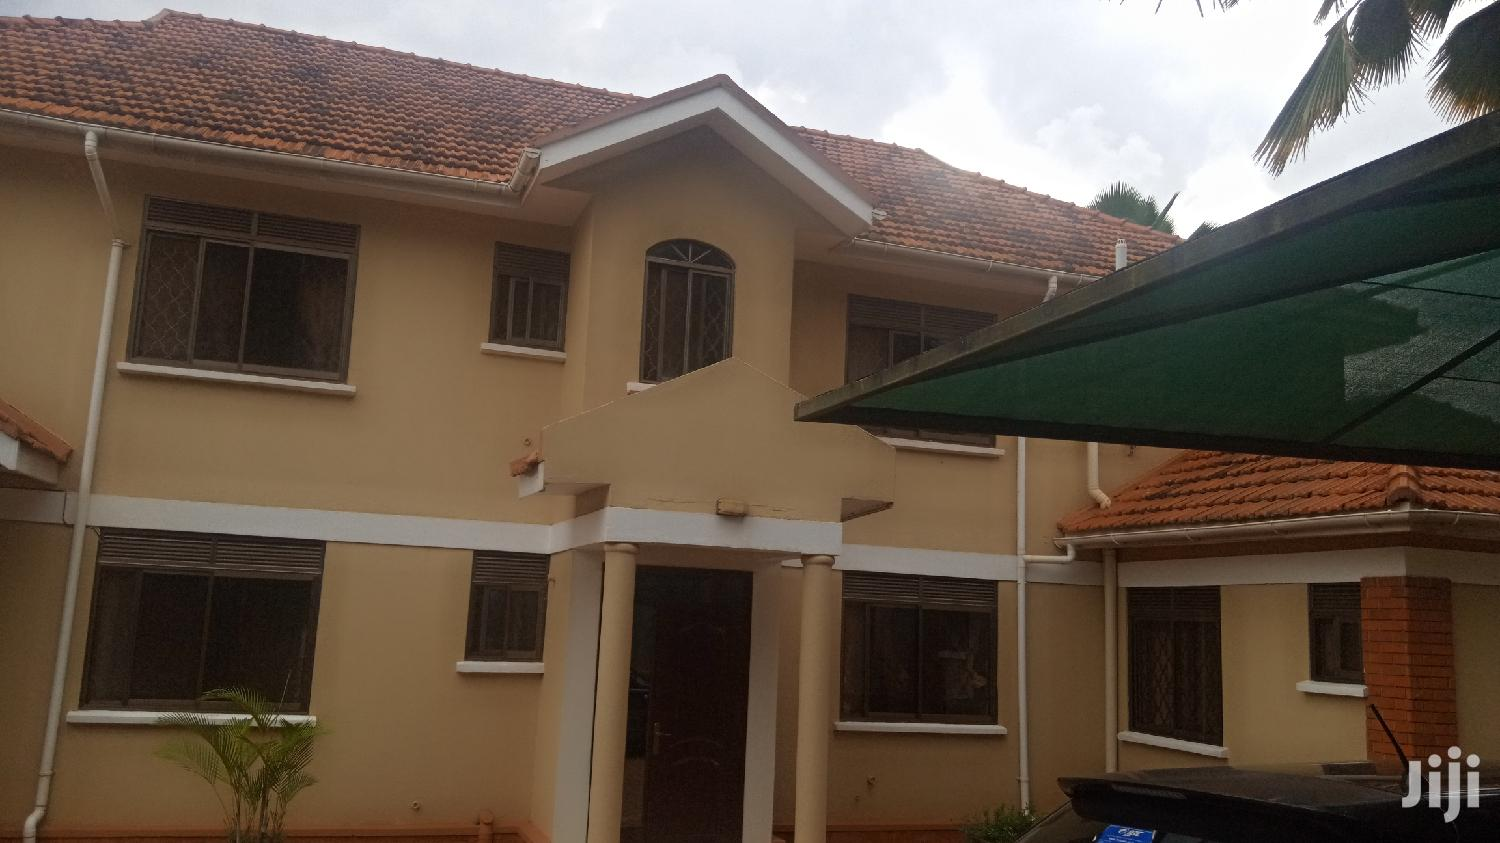 Archive: Beauteful House For Sale In Ntinda Sitting On 50 Decimals